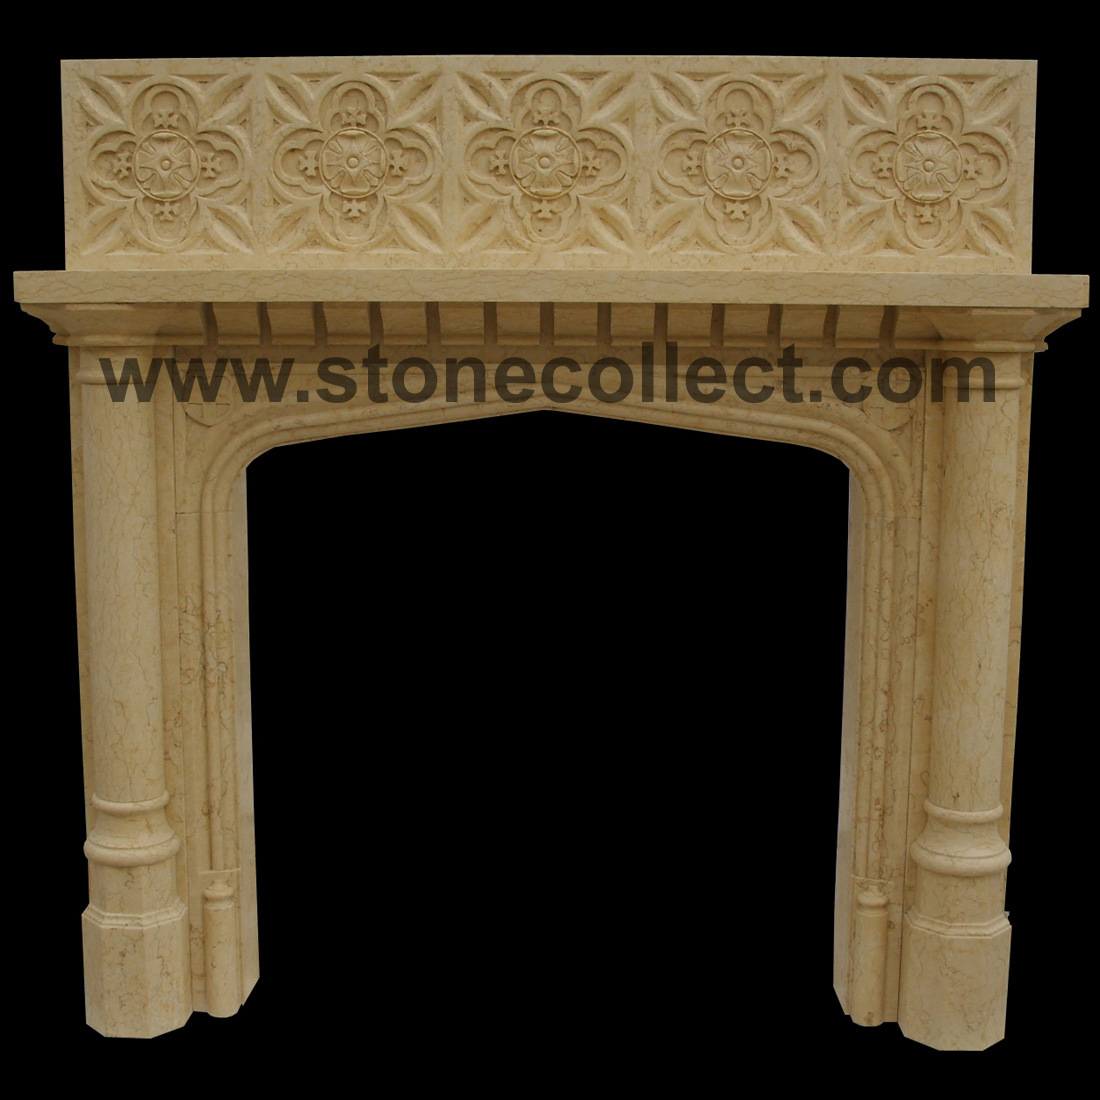 Beautiful European Style Marble Fireplace for Indoor